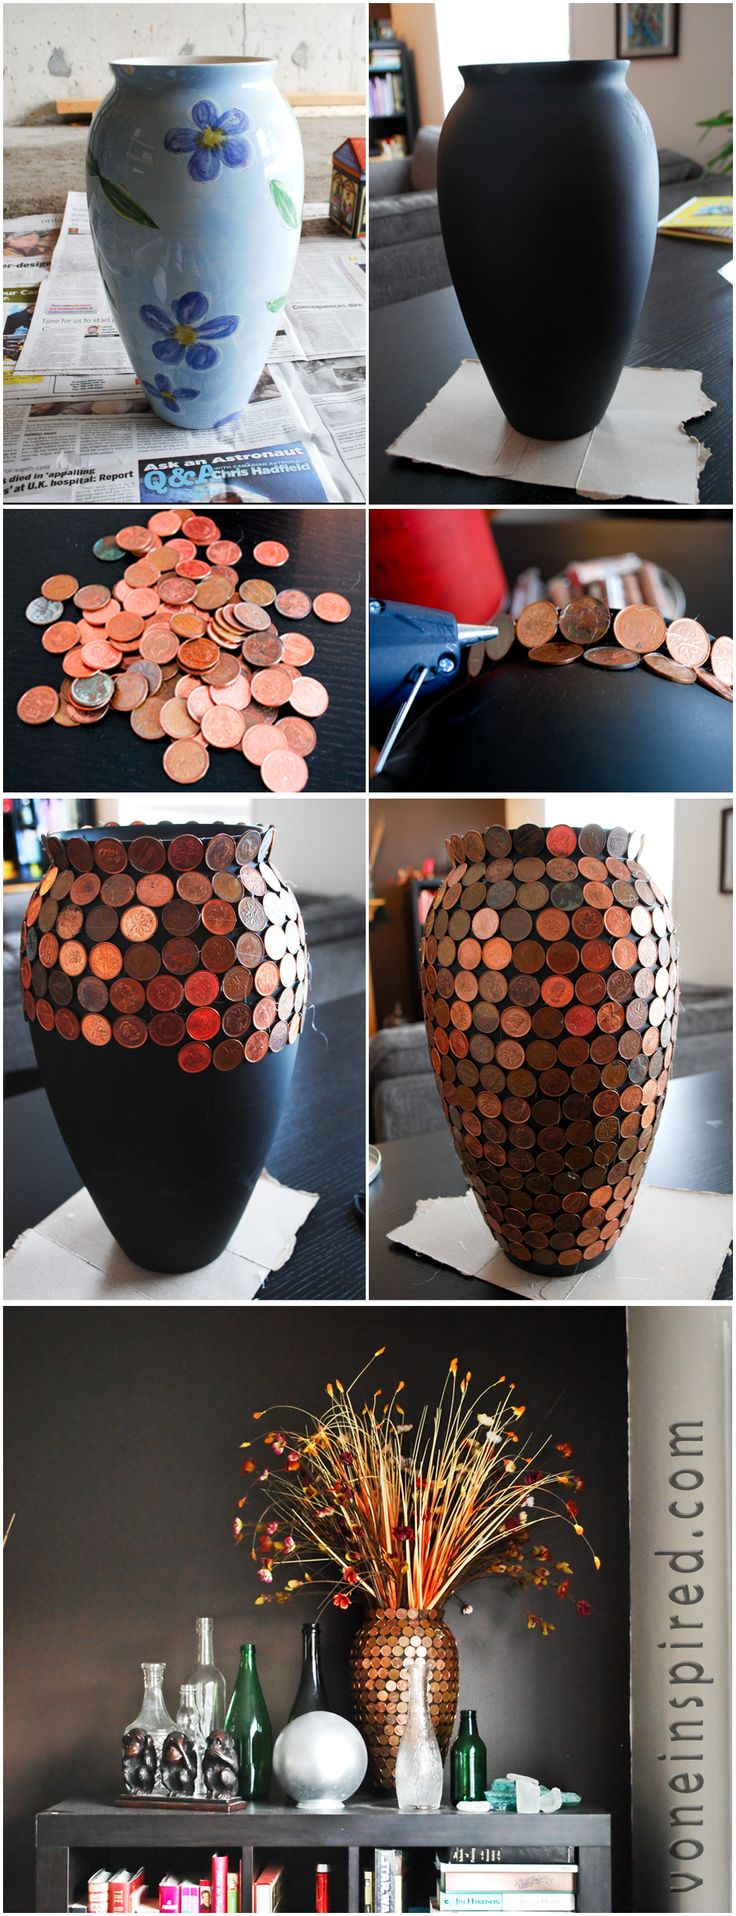 The Steps to Make a Penny Vase from VoneInspired